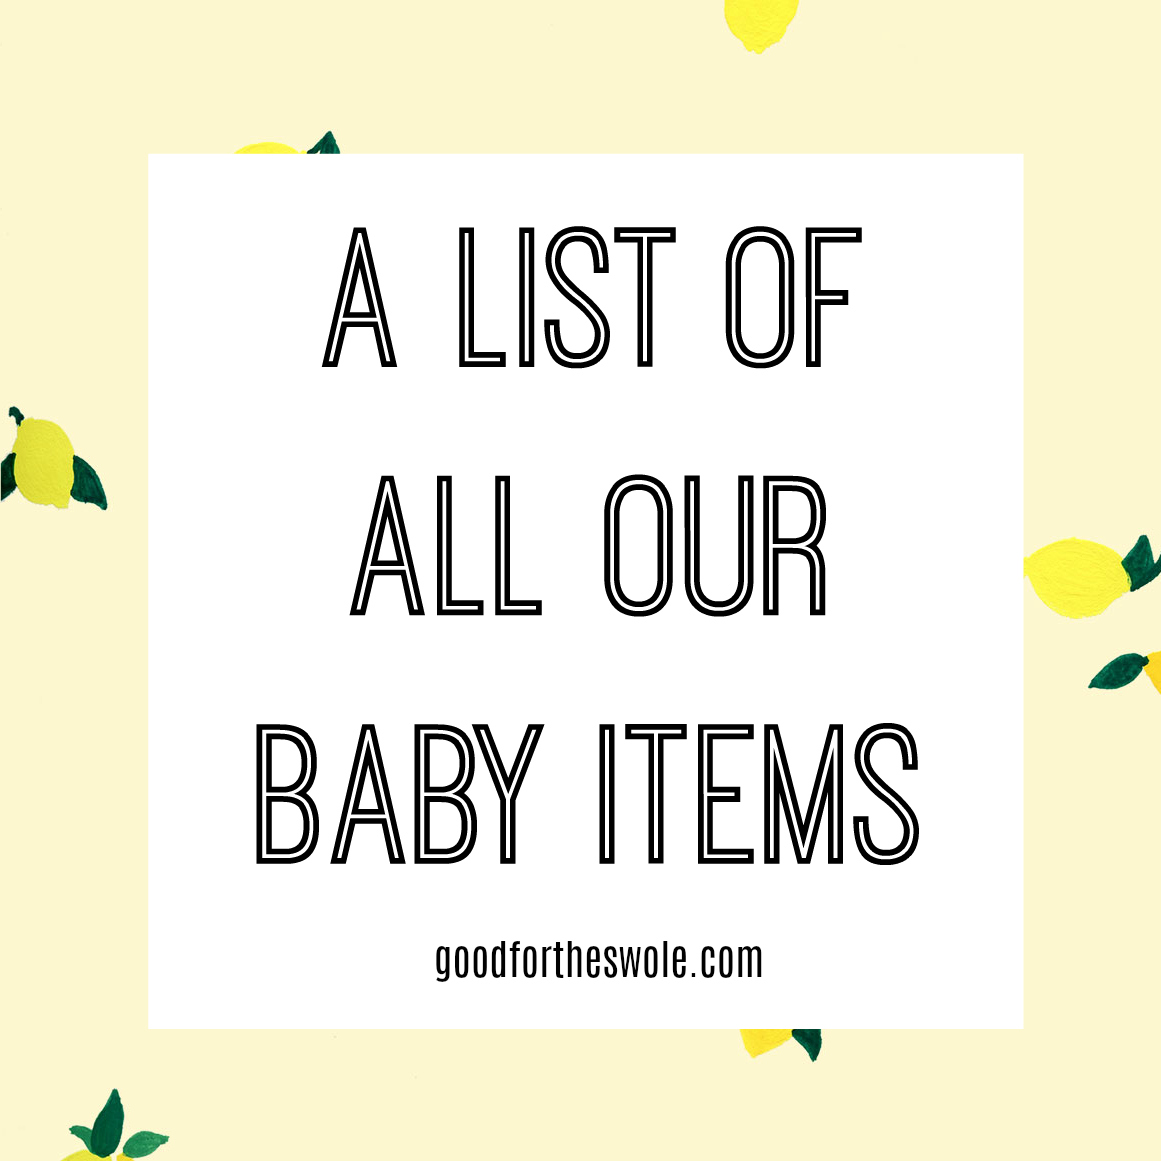 Baby Items To Get || goodfortheswole.com